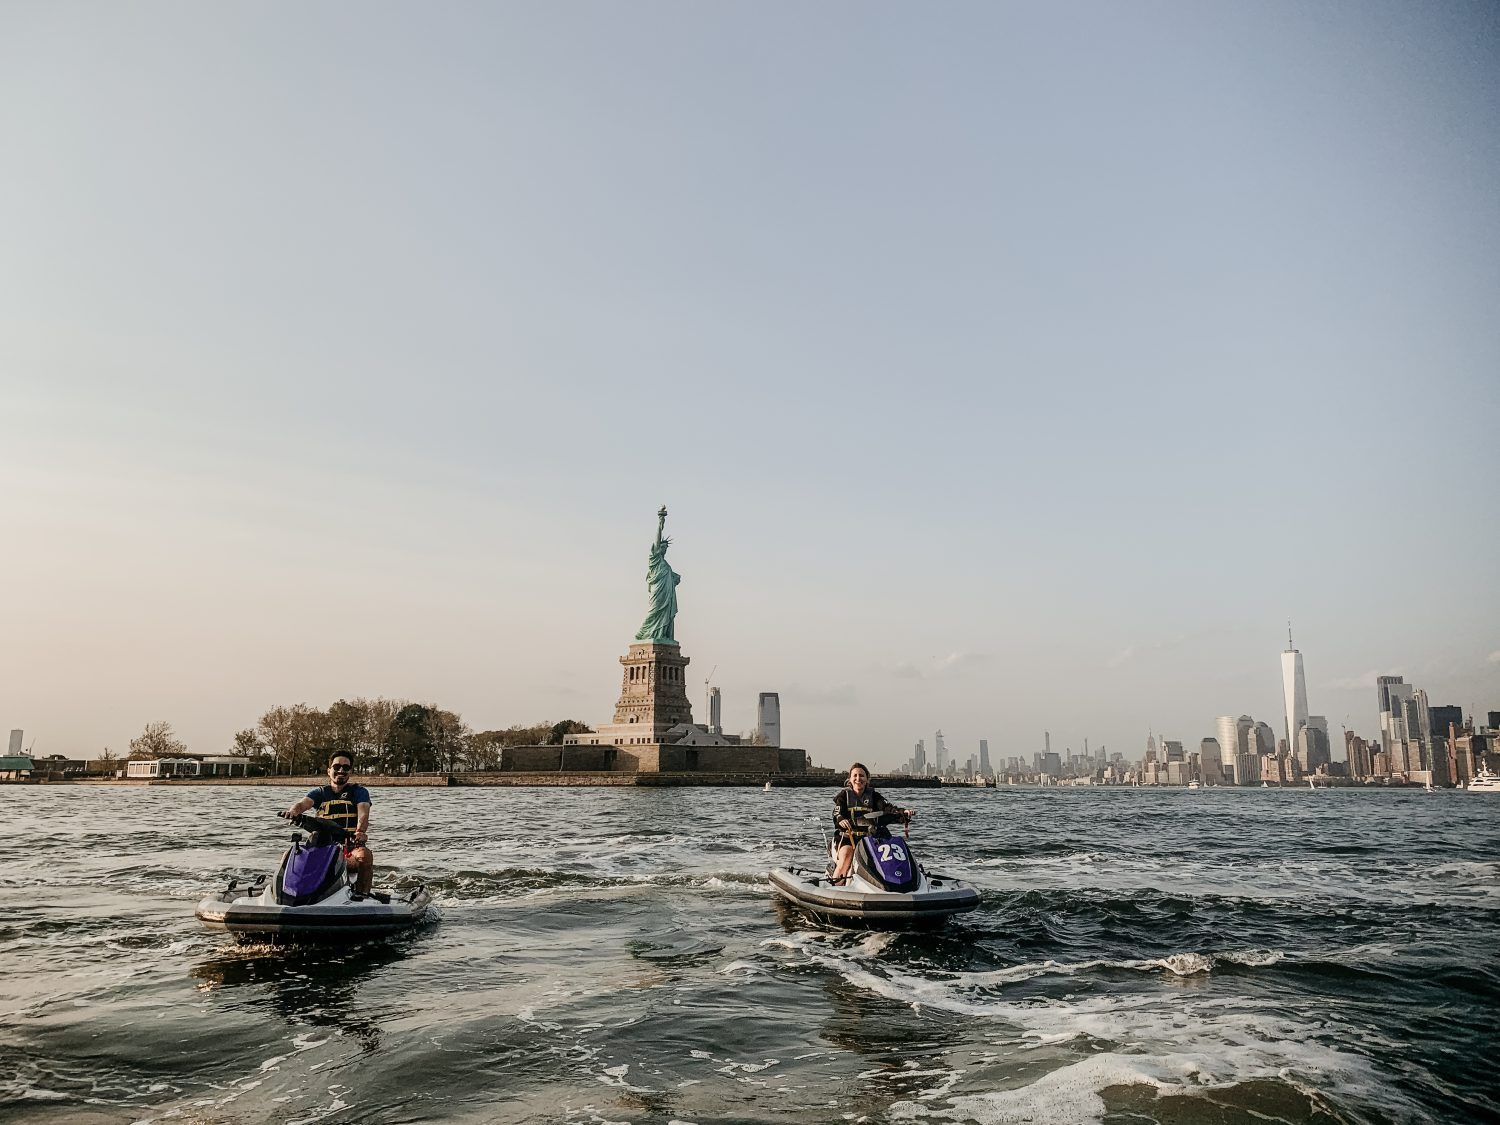 Jet ski tour in new york city a complete guide laura